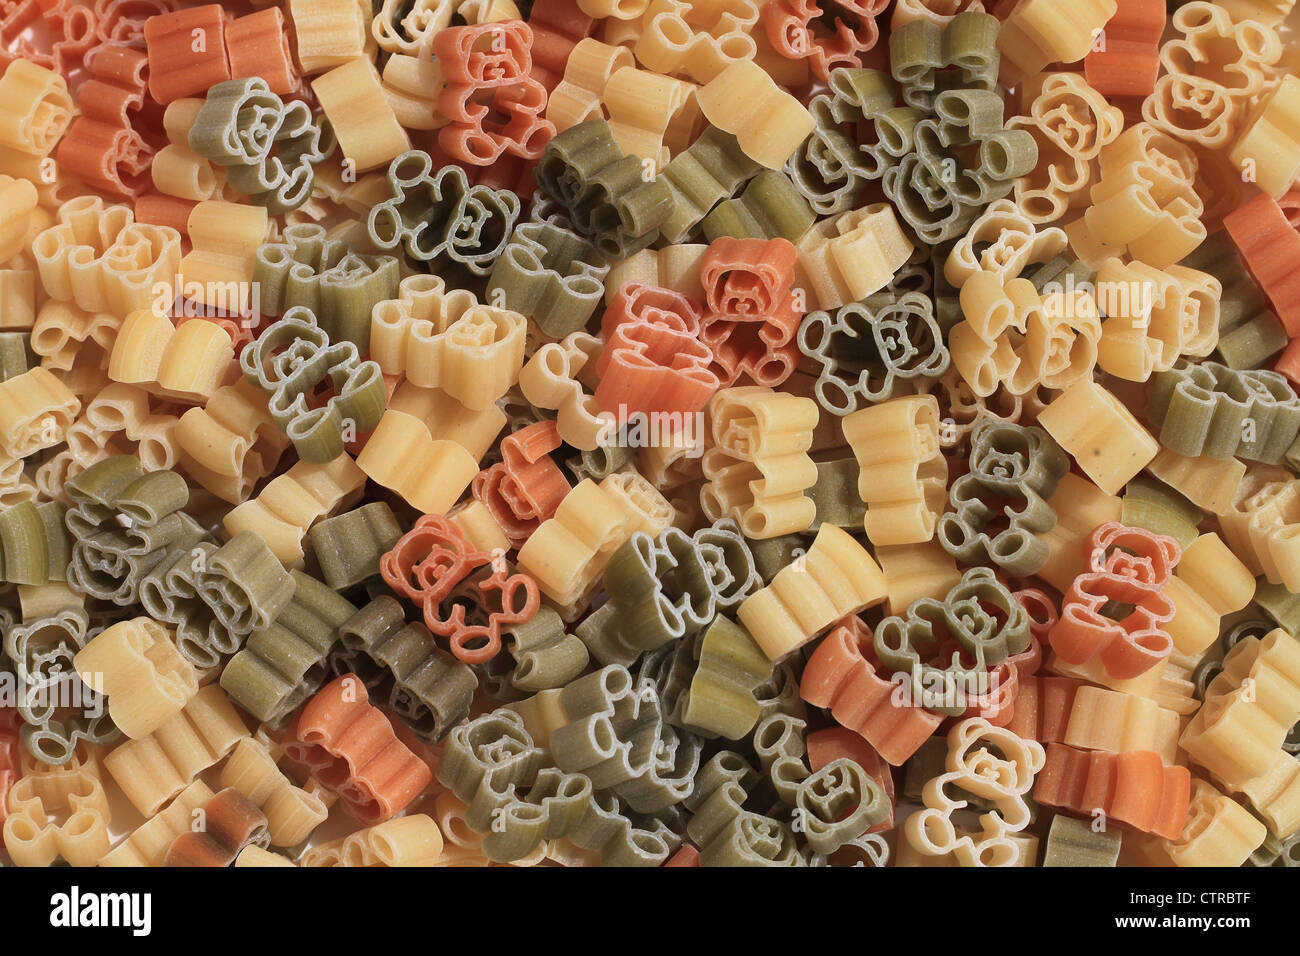 Italian pasta of durum wheat semolina with tomato and spinach in form of teddy bears. Funny for children. - Stock Image